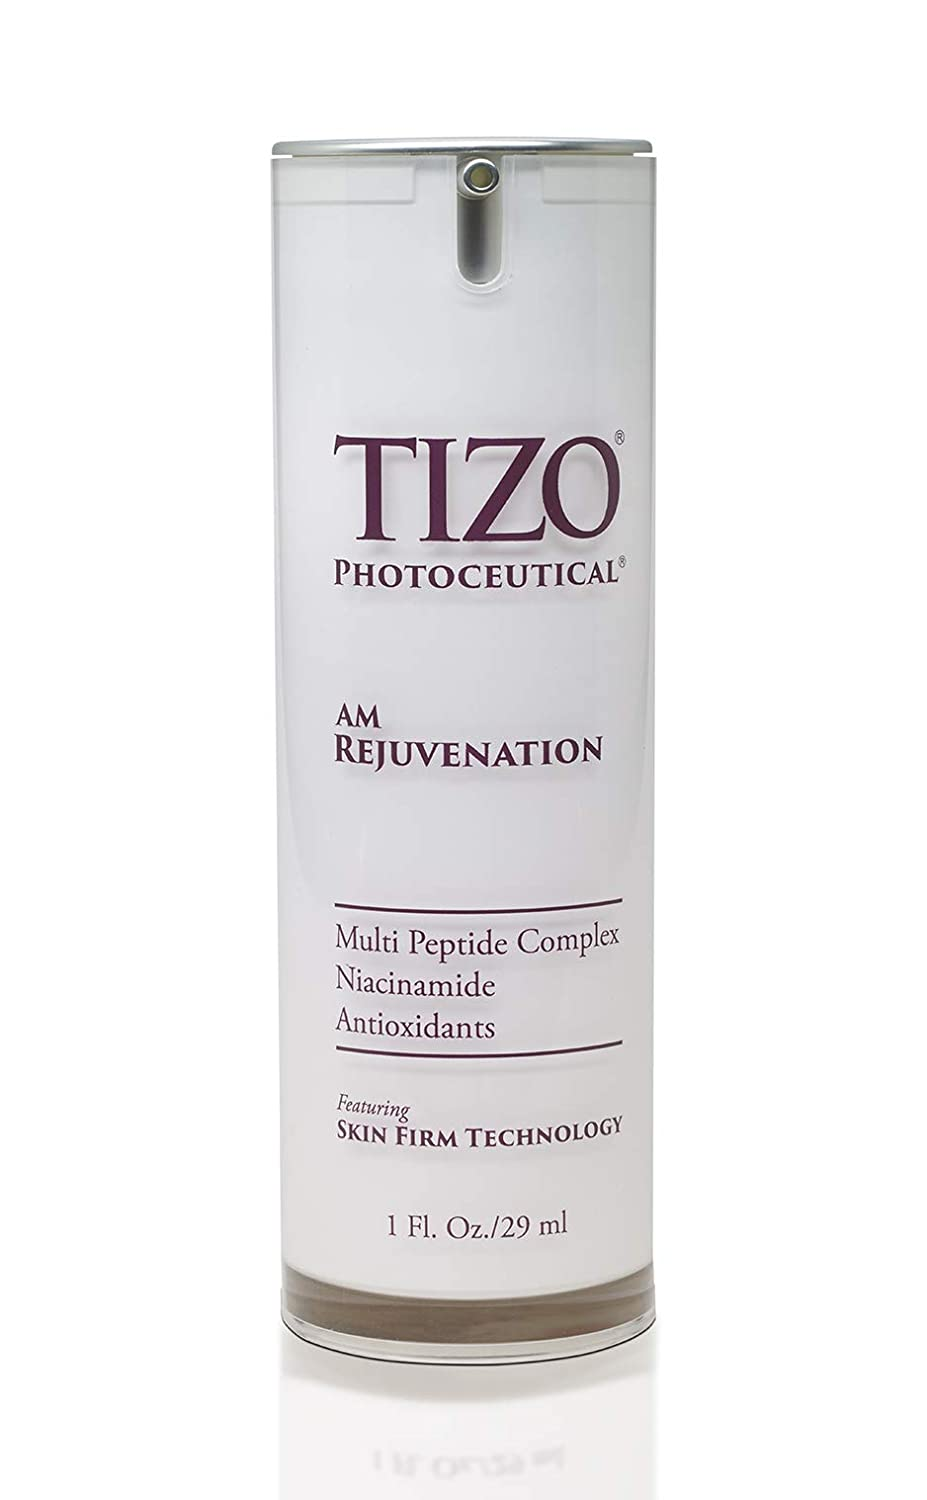 Tizo Photoceutical AM Rejuvenation   B01G2LF2VW